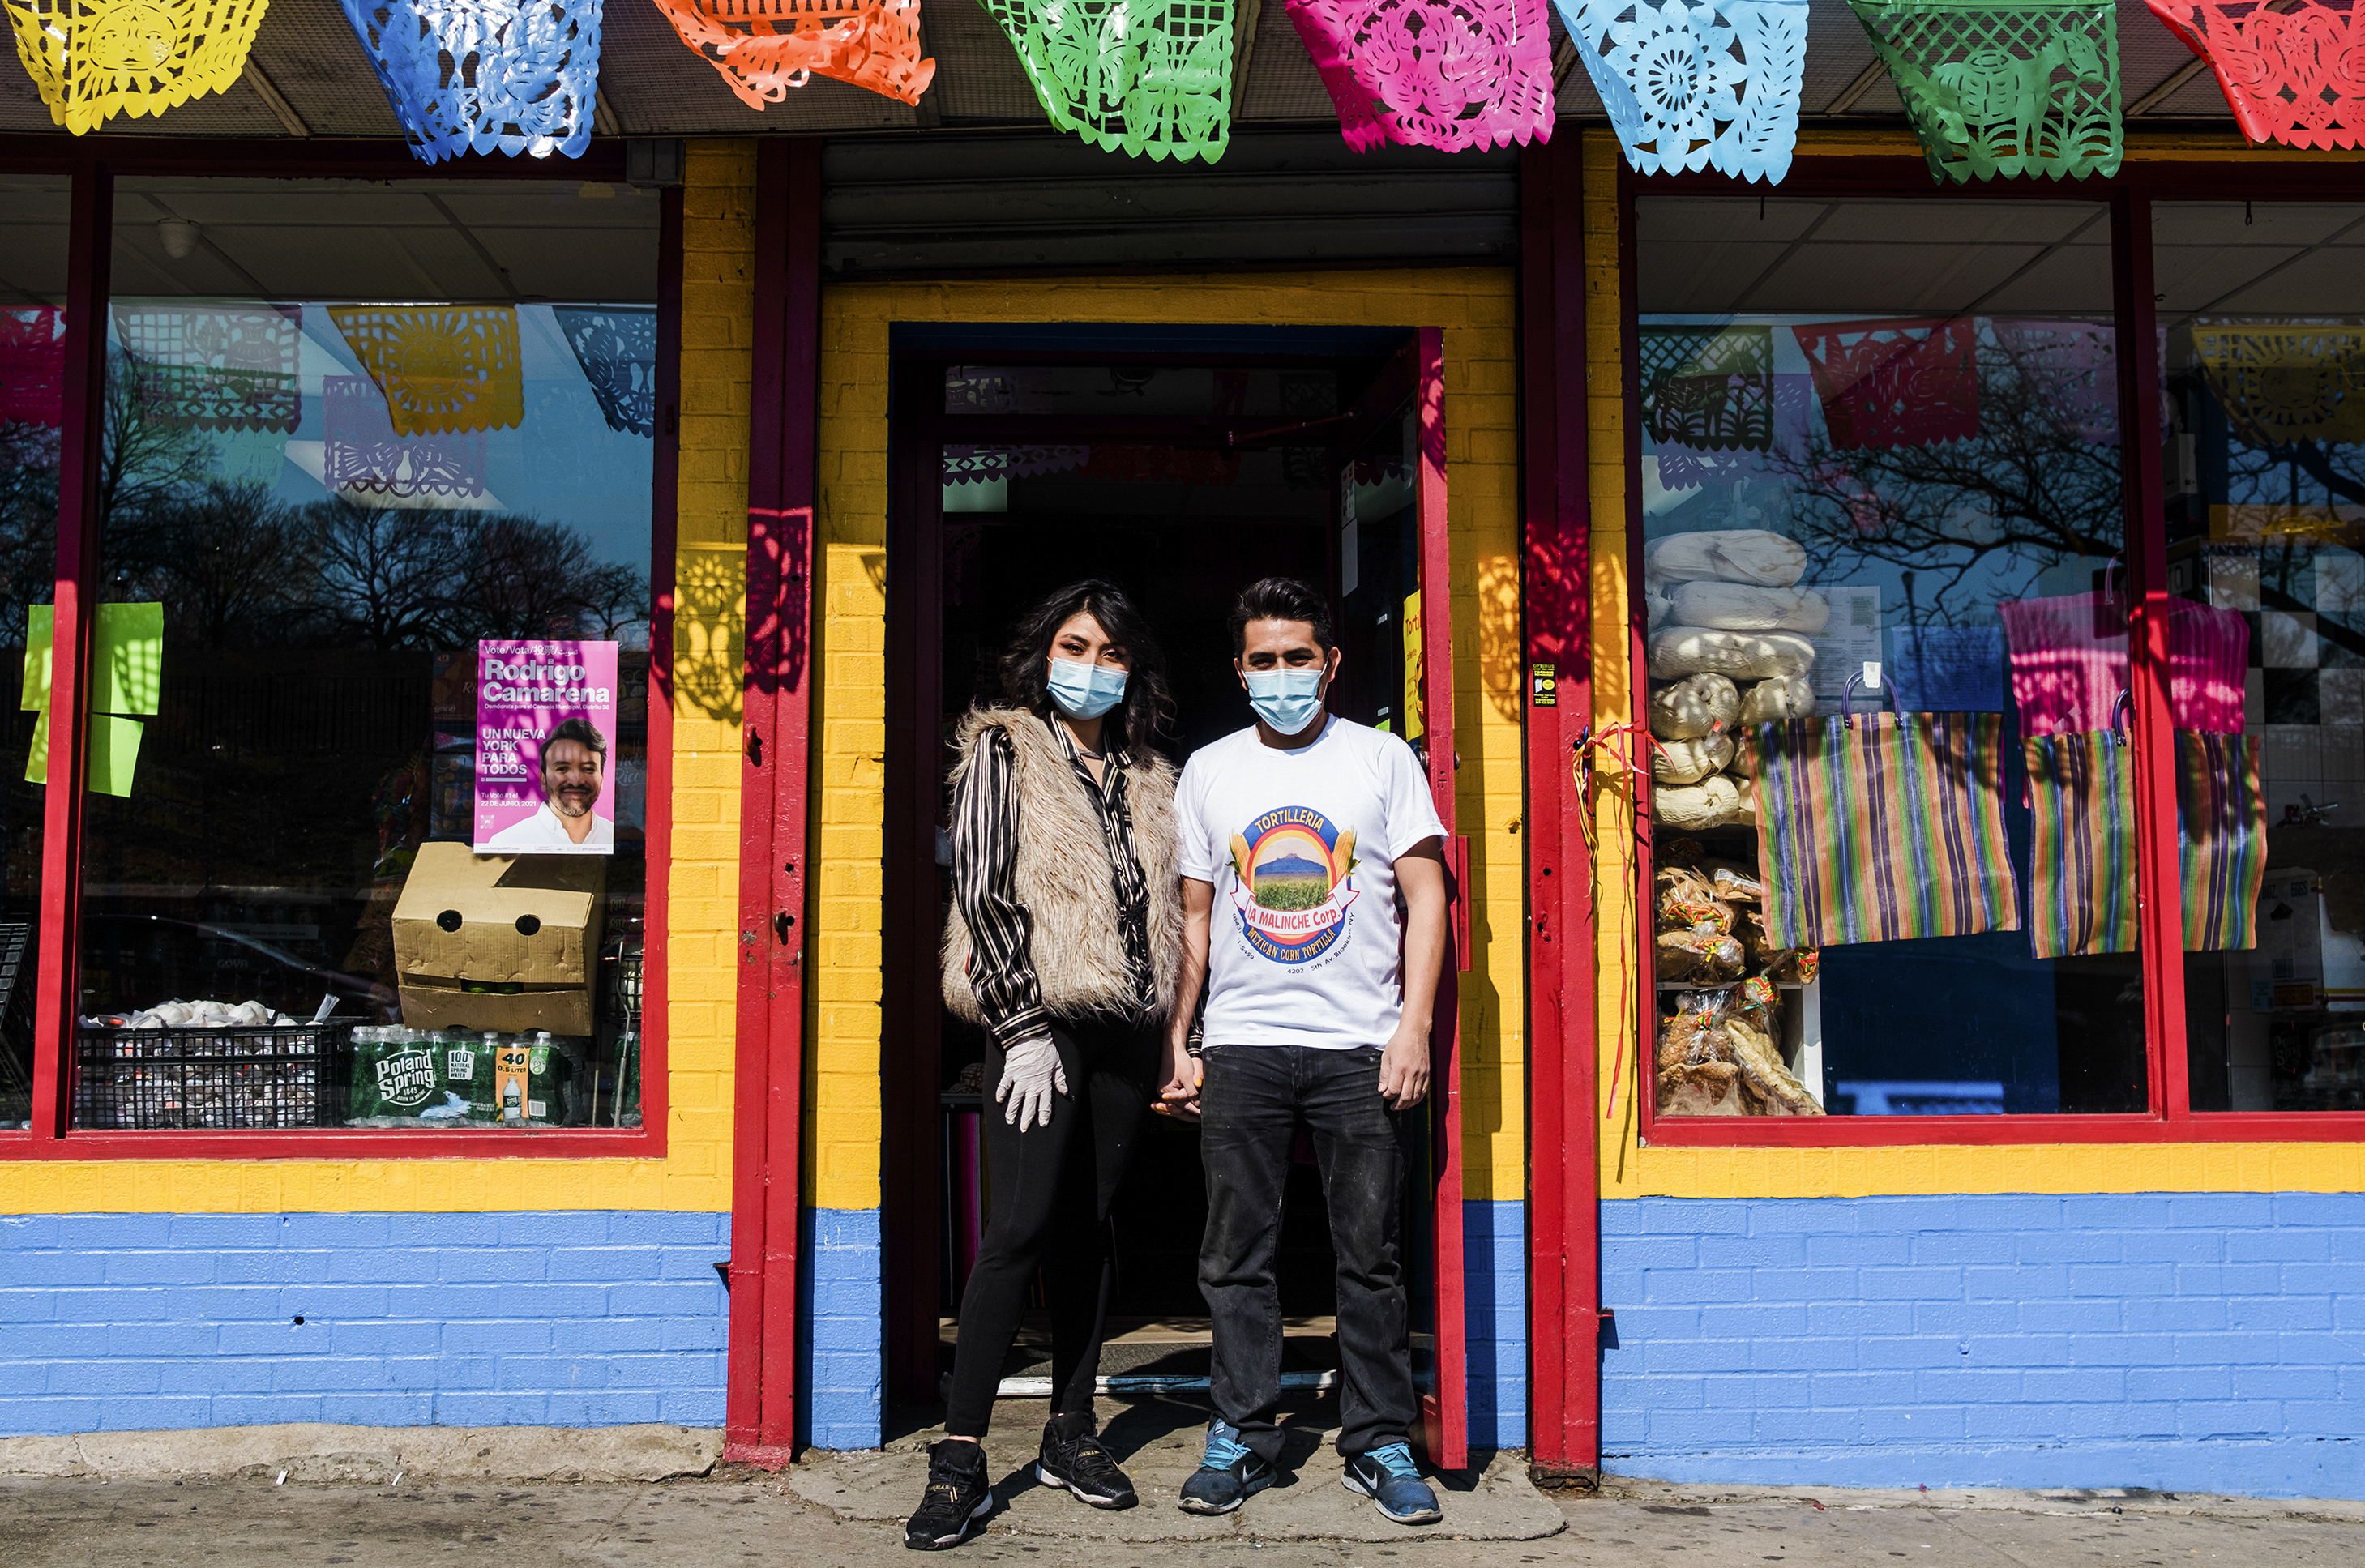 Ilsel Garcia and Jesus Delgada secured the storefront for their Tortilleria La Malinche last summer, and opened in February.